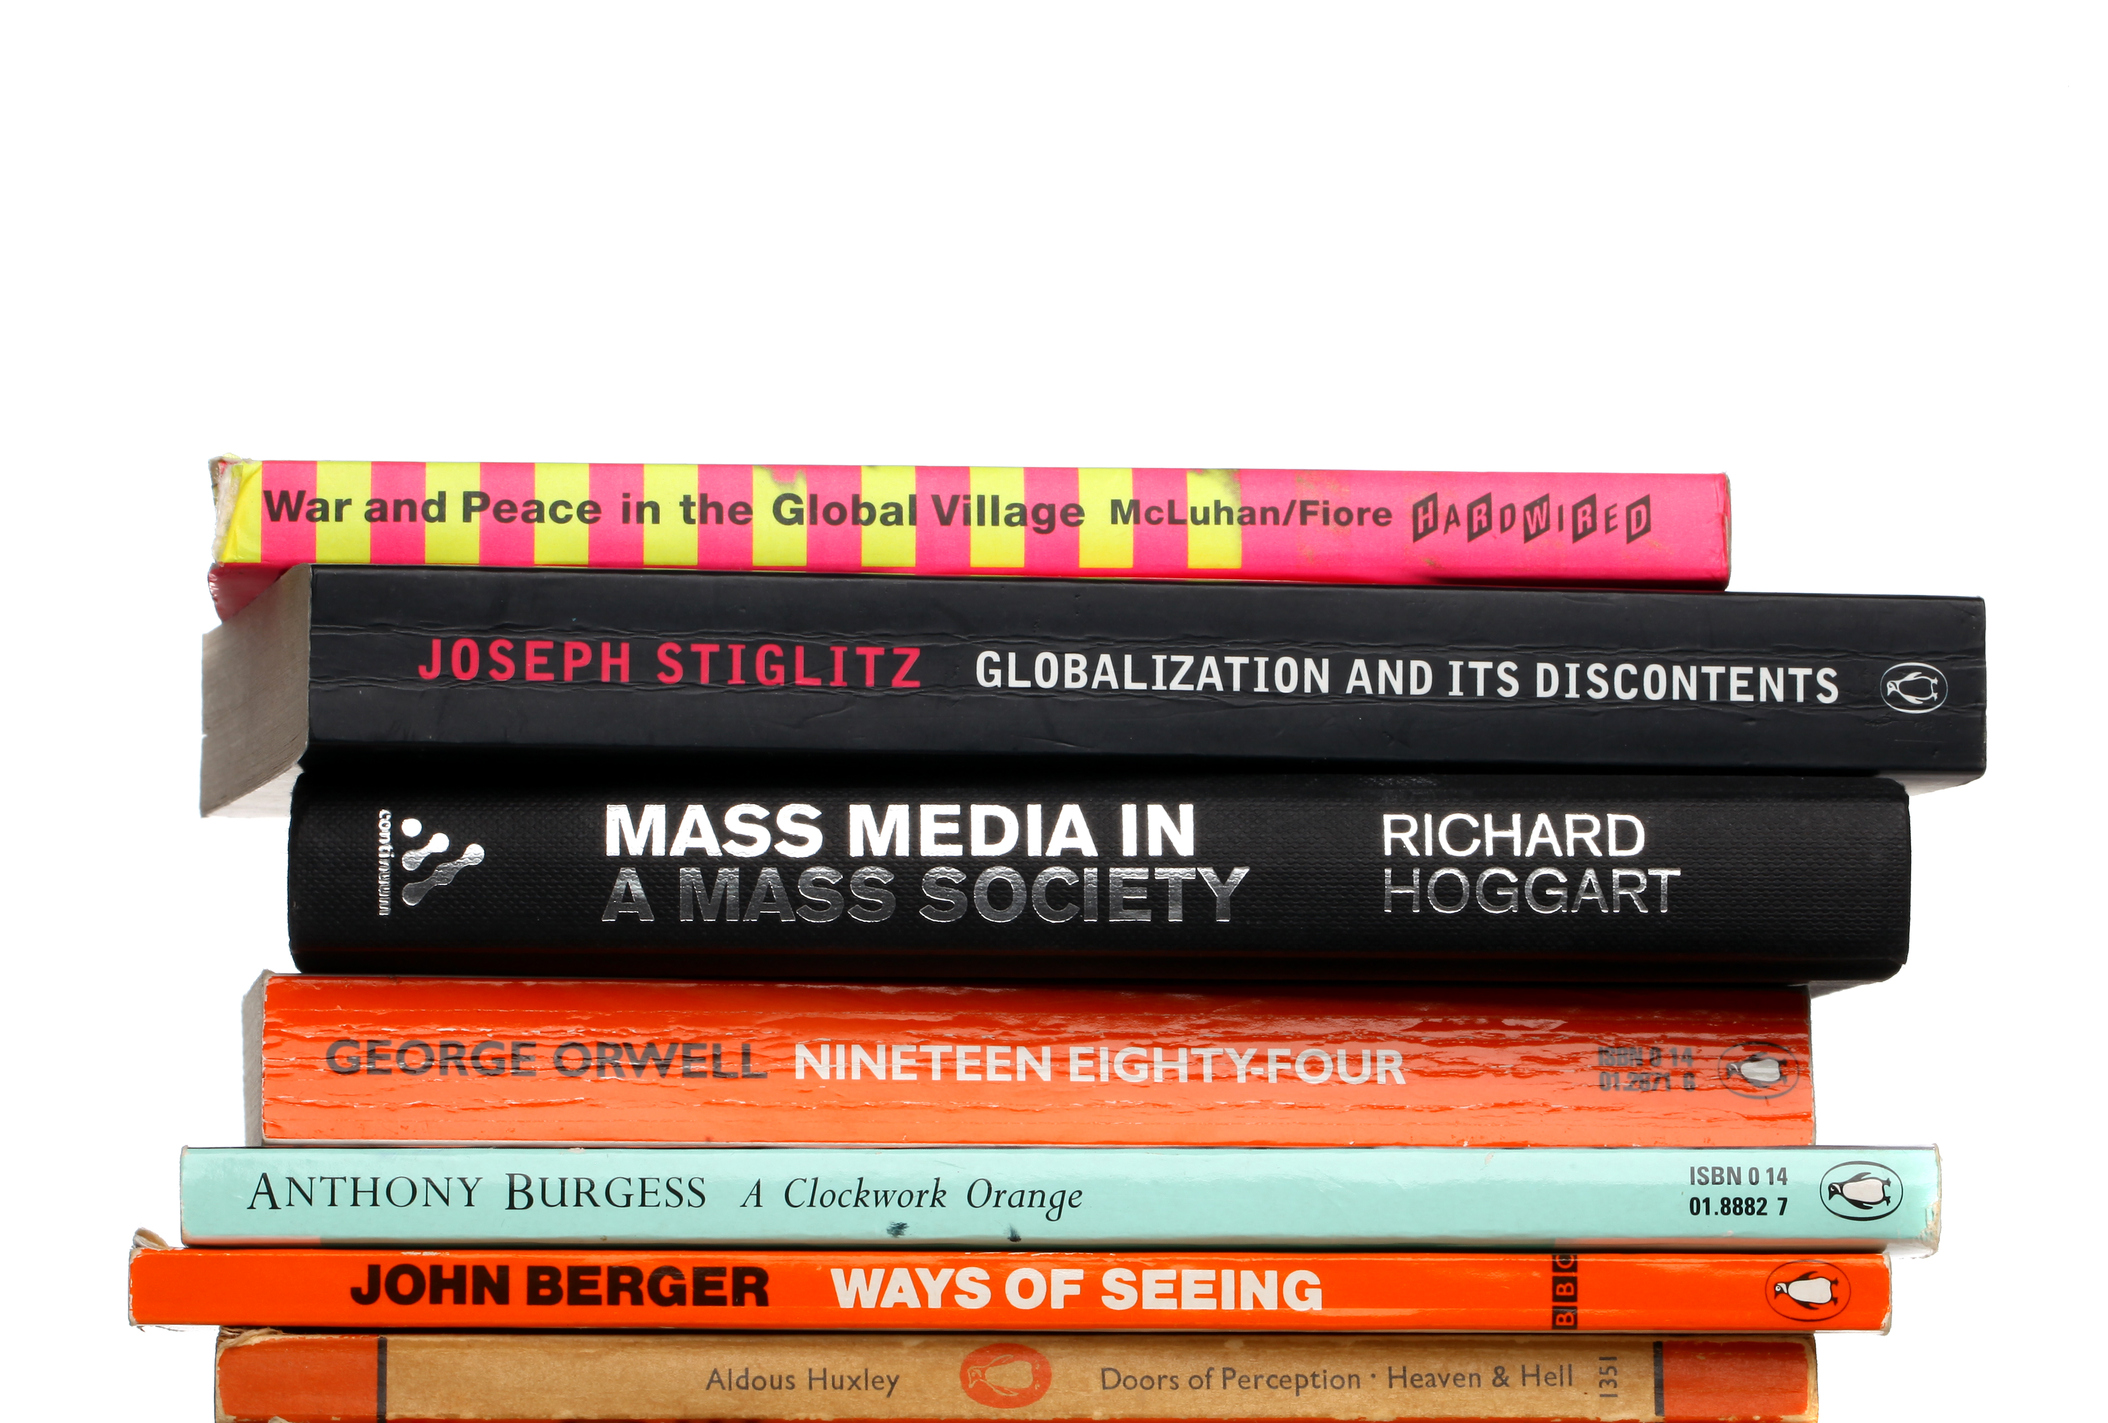 London, United Kingdom - August 24, 2011: Media and literature books. Incuding titles by Marshall Mcluhan, Joseph Stiglitz and George Orwell